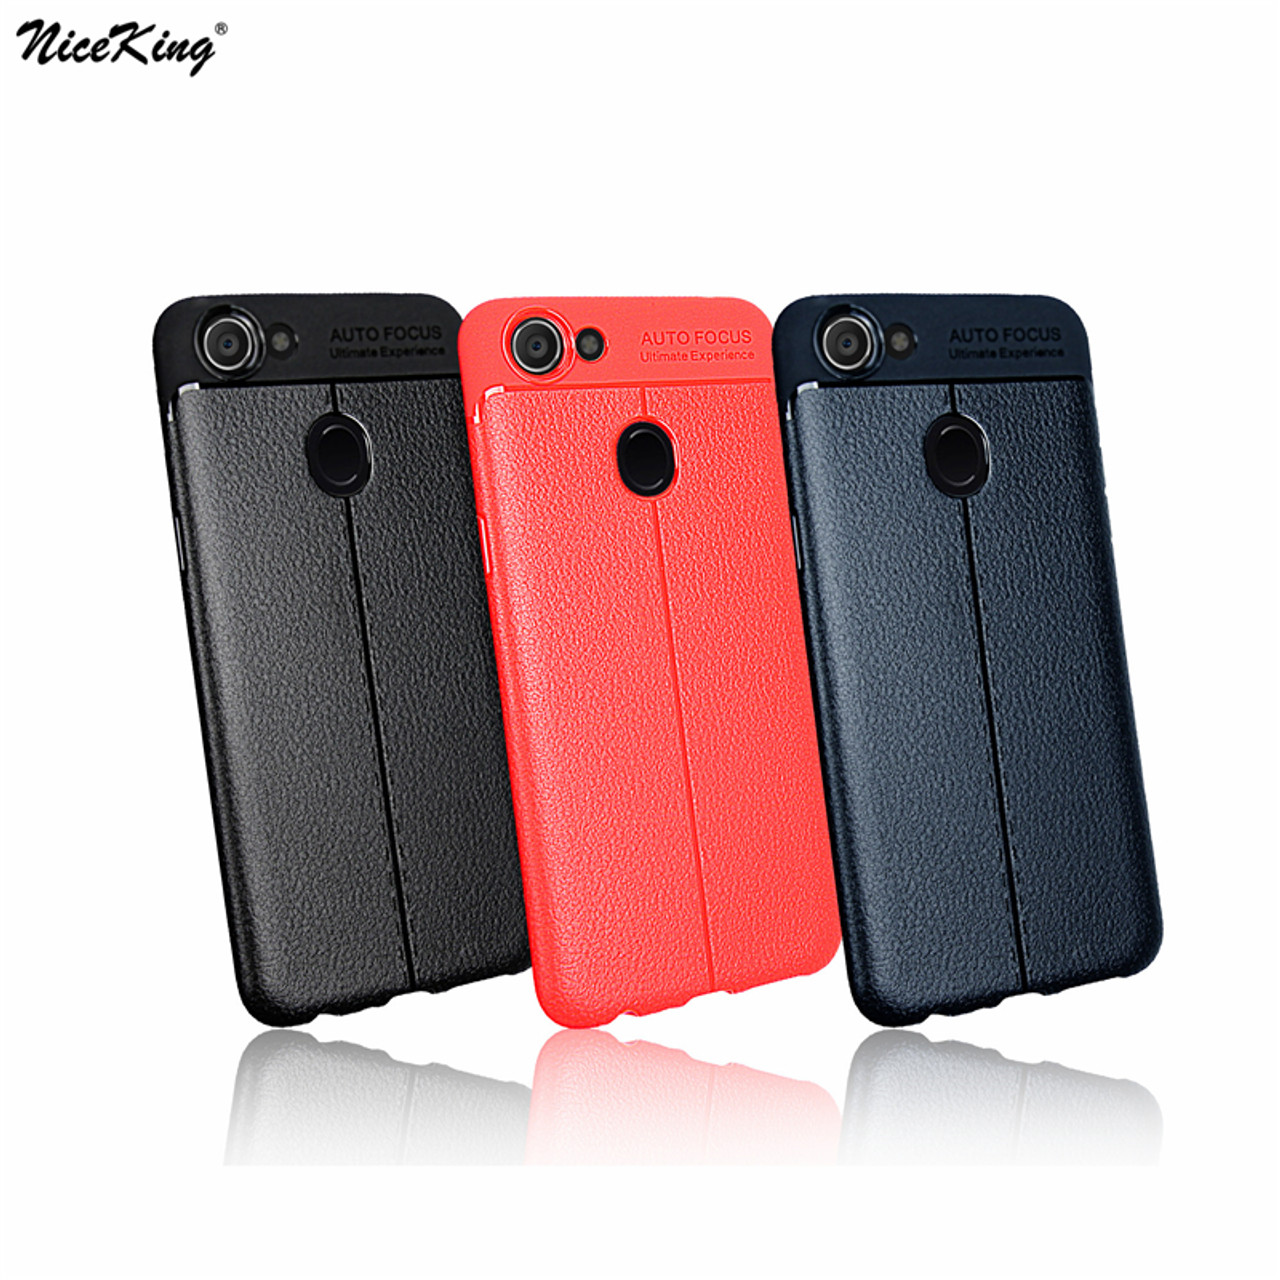 9cbacee72c87f2 sFor OPPO F5 Case NiceKing Litchi Striae Soft TPU Silicone PU Leather Back Cover  Case For ...